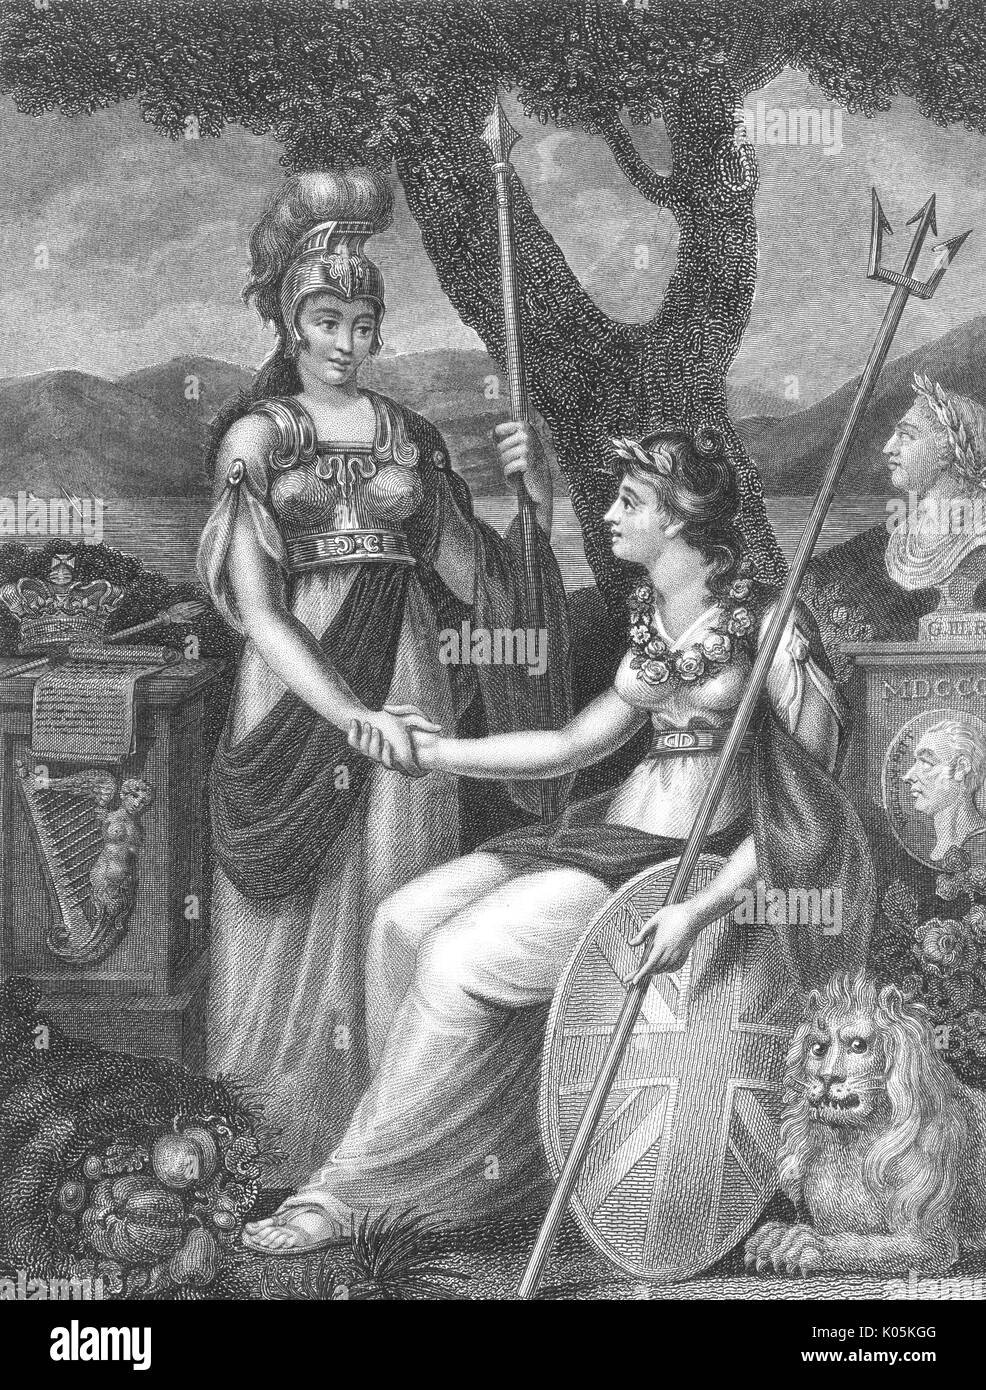 A rather optimistic allegory  of Erin (Ireland) making  friends and shaking hands  with Britannia (Britain).       Date: 1812 - Stock Image